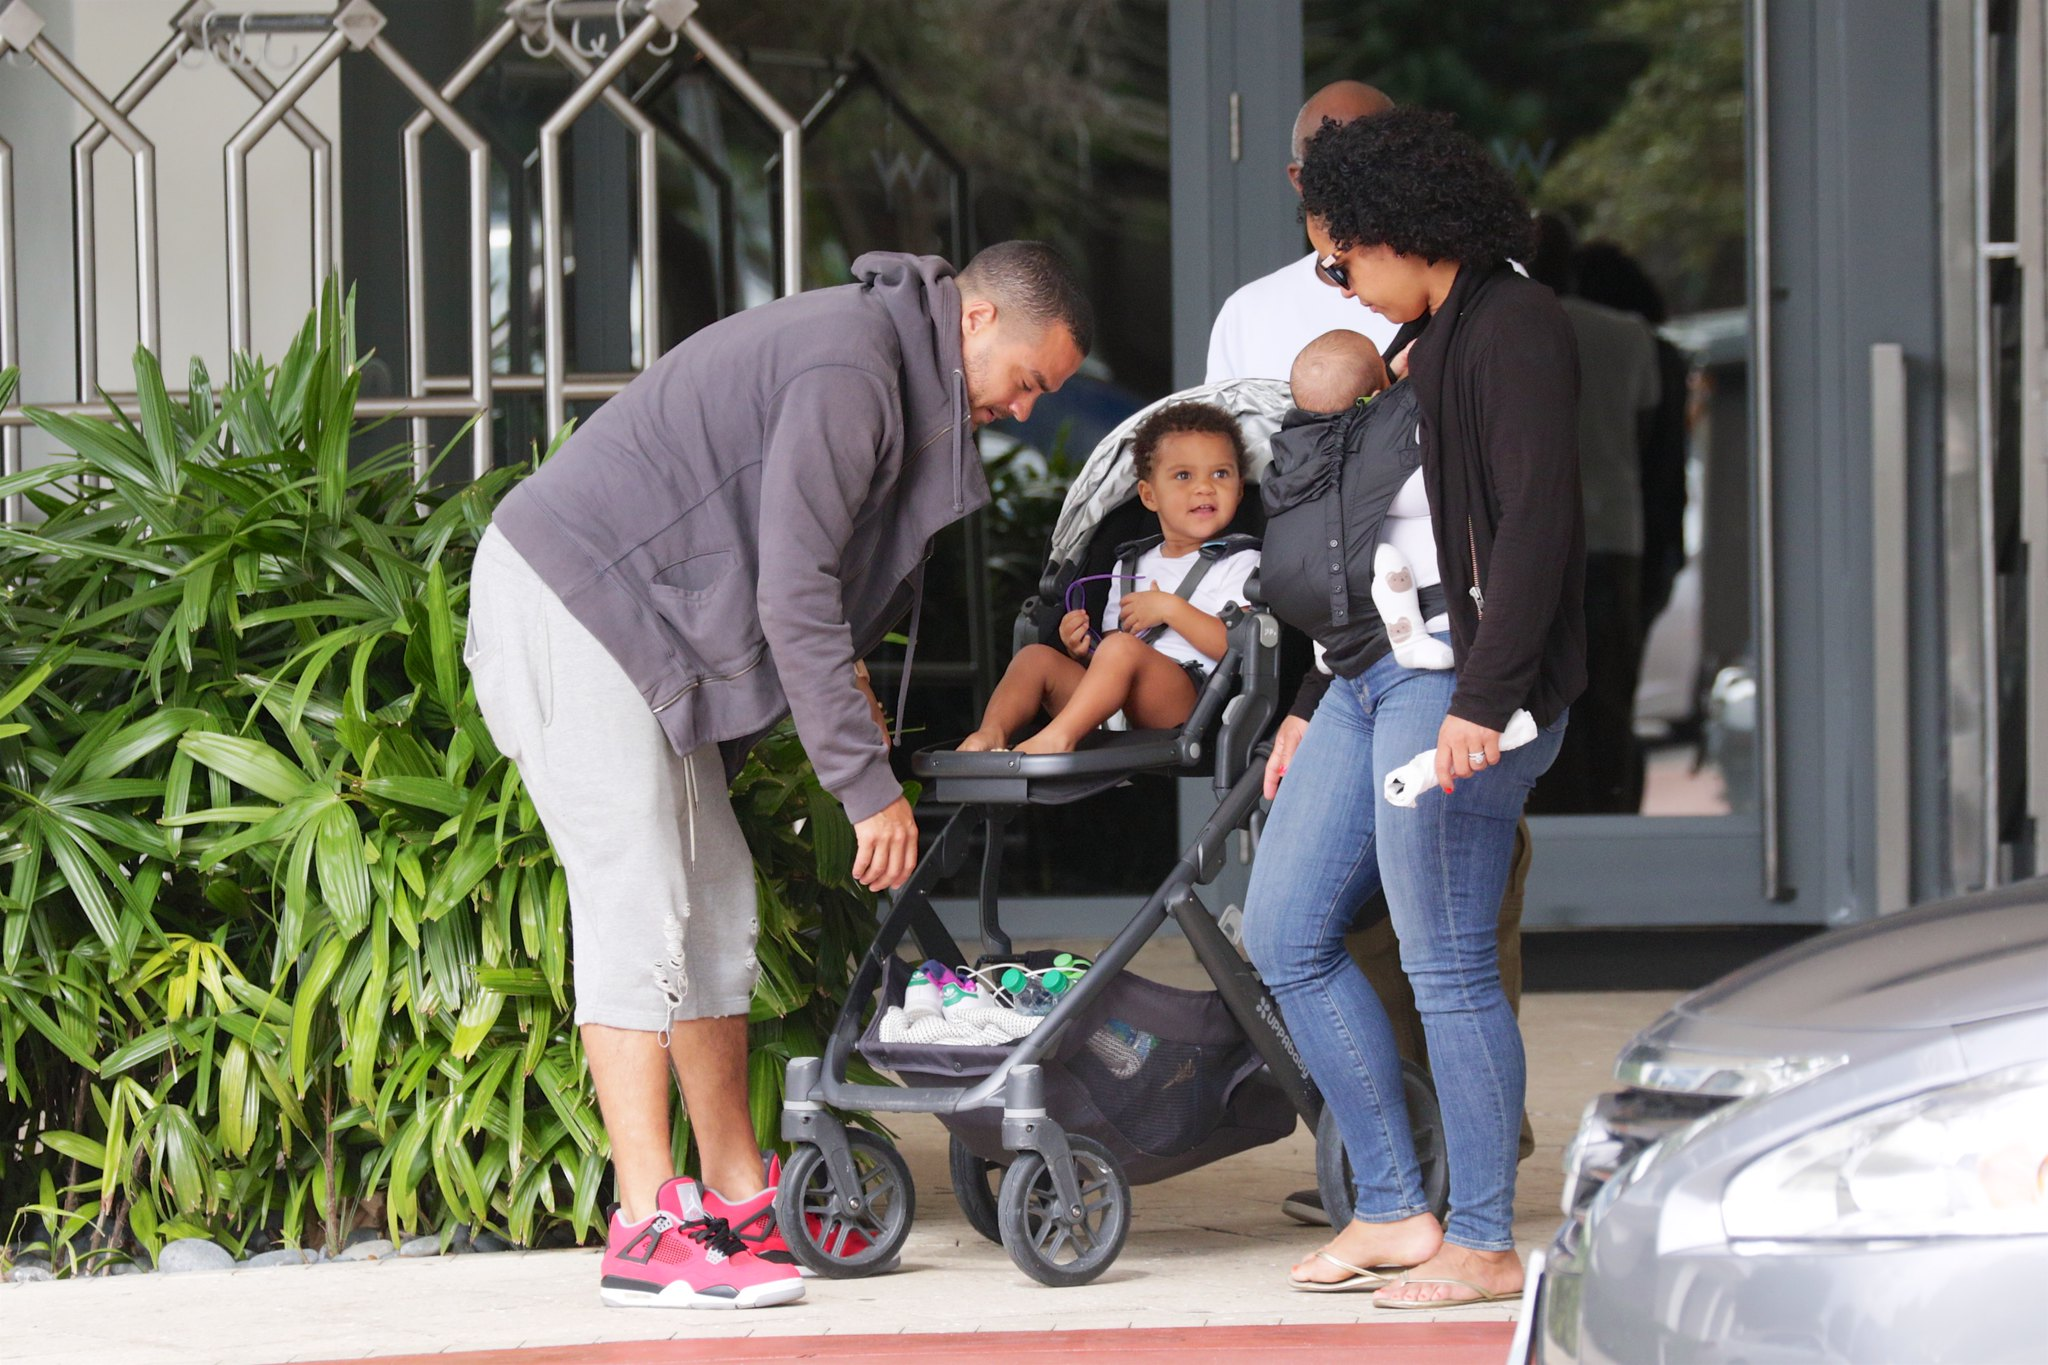 R Kelly And His Wife And Kids Jesse Williams and fam...